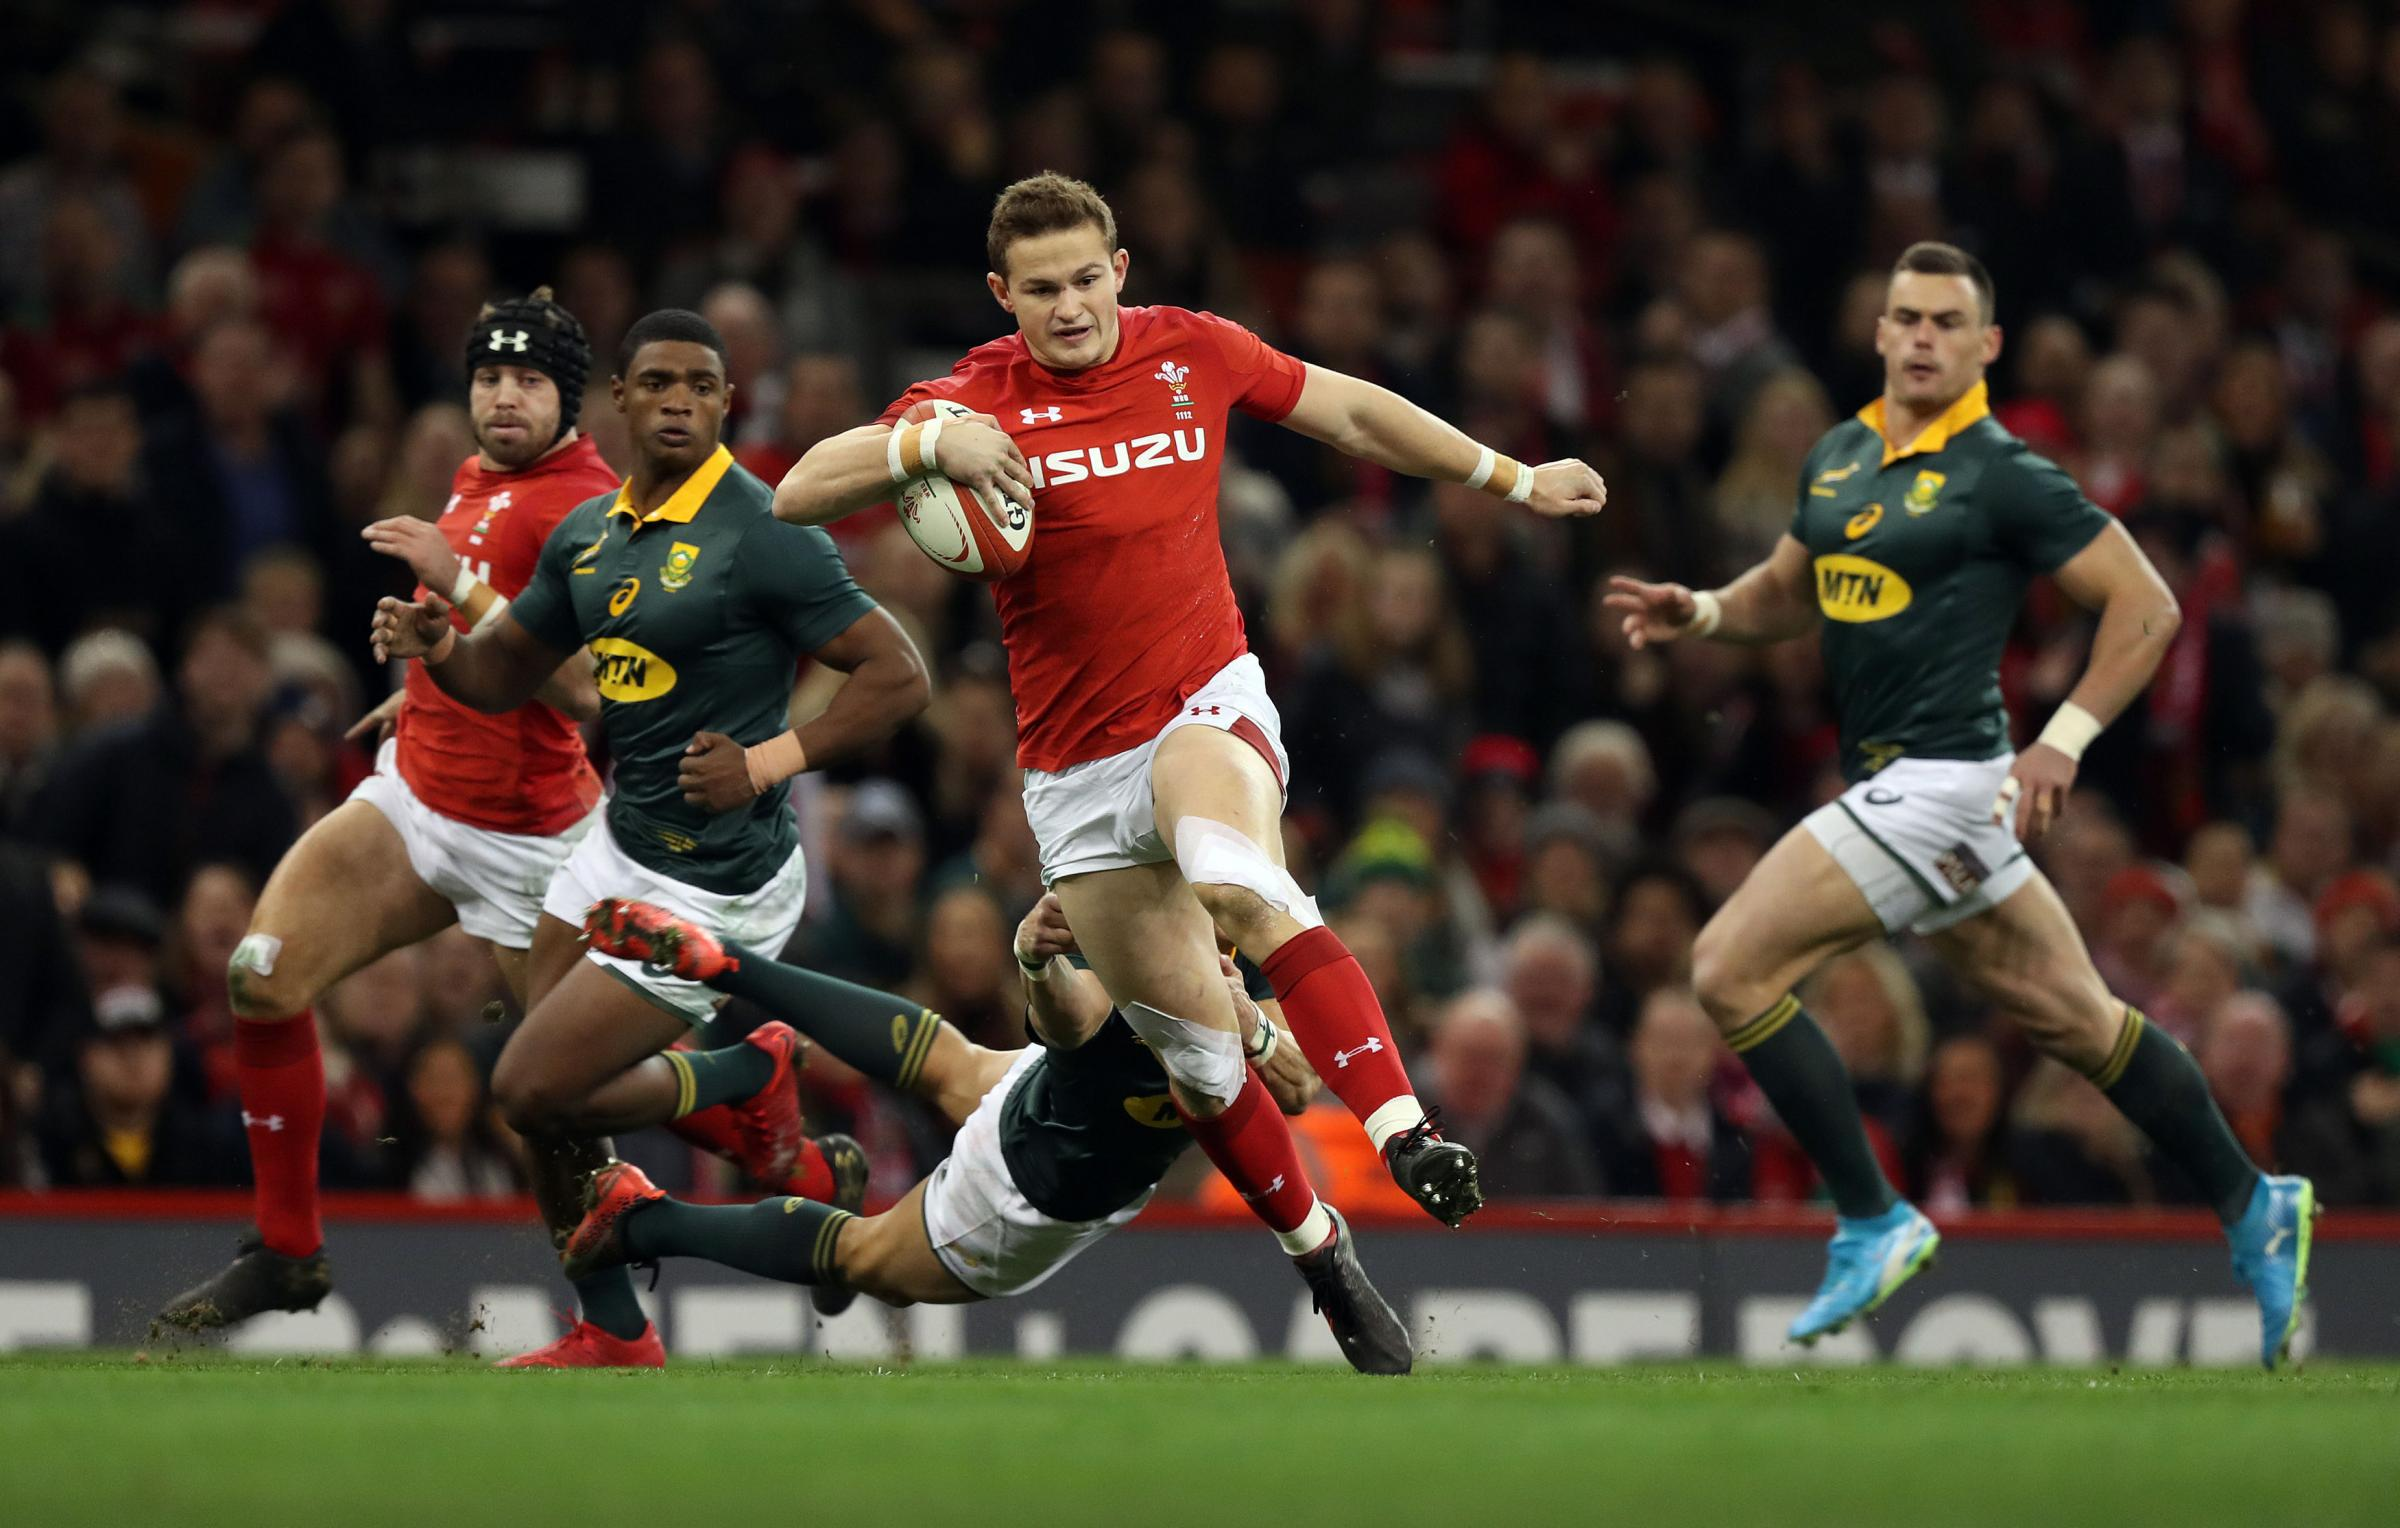 REUNION: Dragons wing Hallam Amos will hope to go up against South Africa again in June